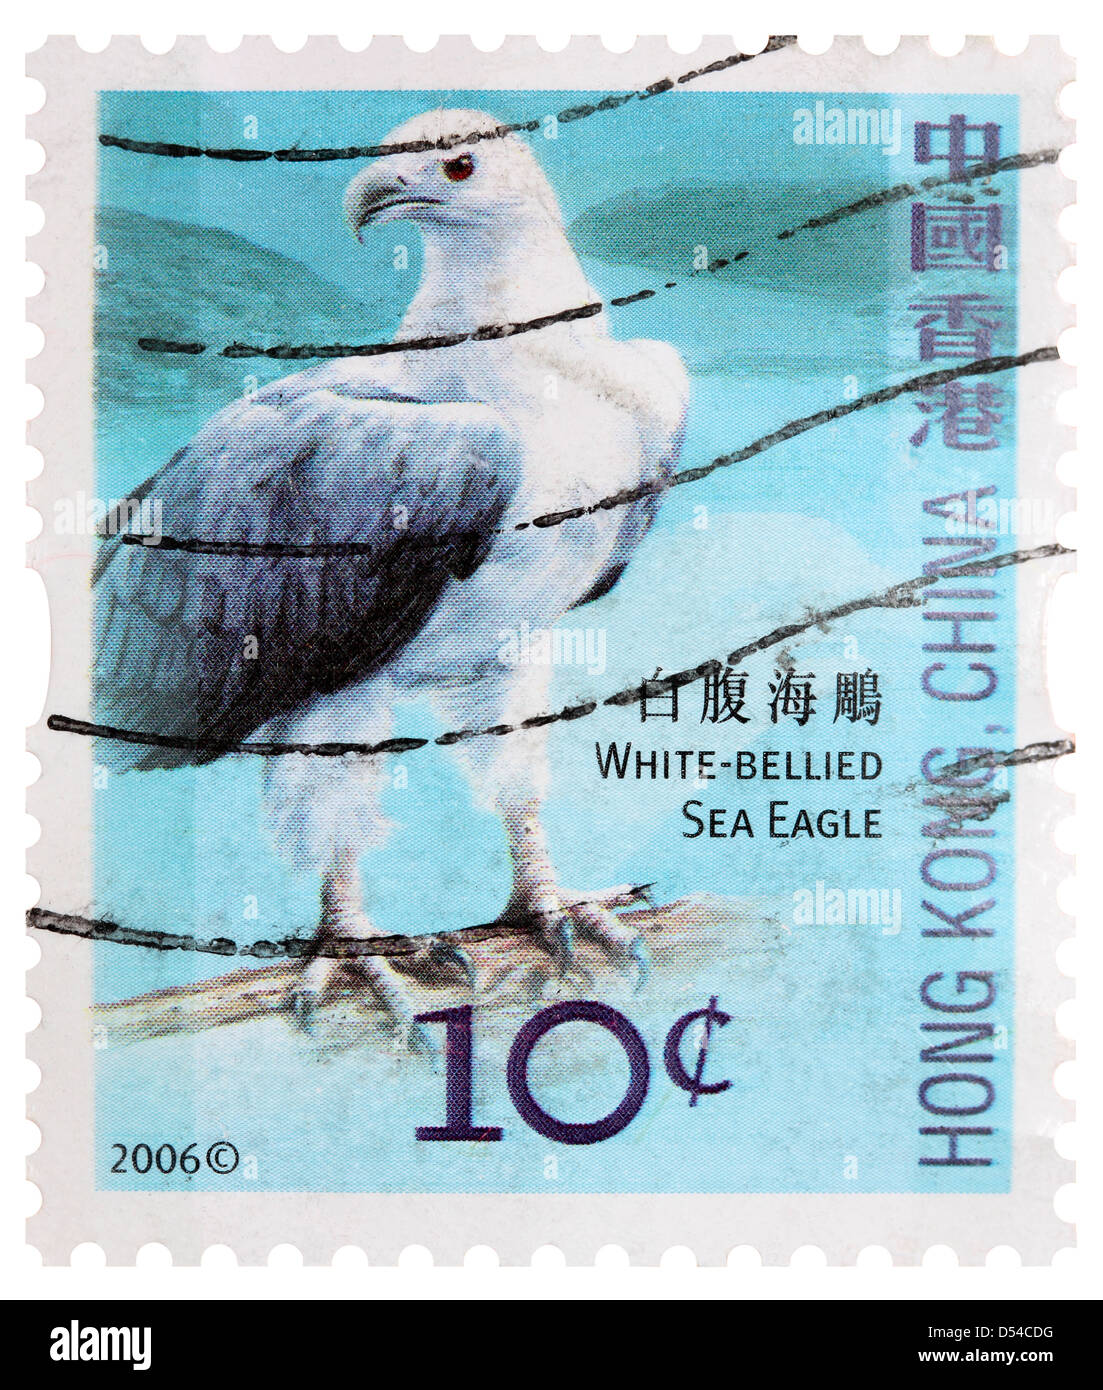 Used Ten Hong Kong Cents Postage Stamp - White-Bellied Sea Eagle - Stock Image